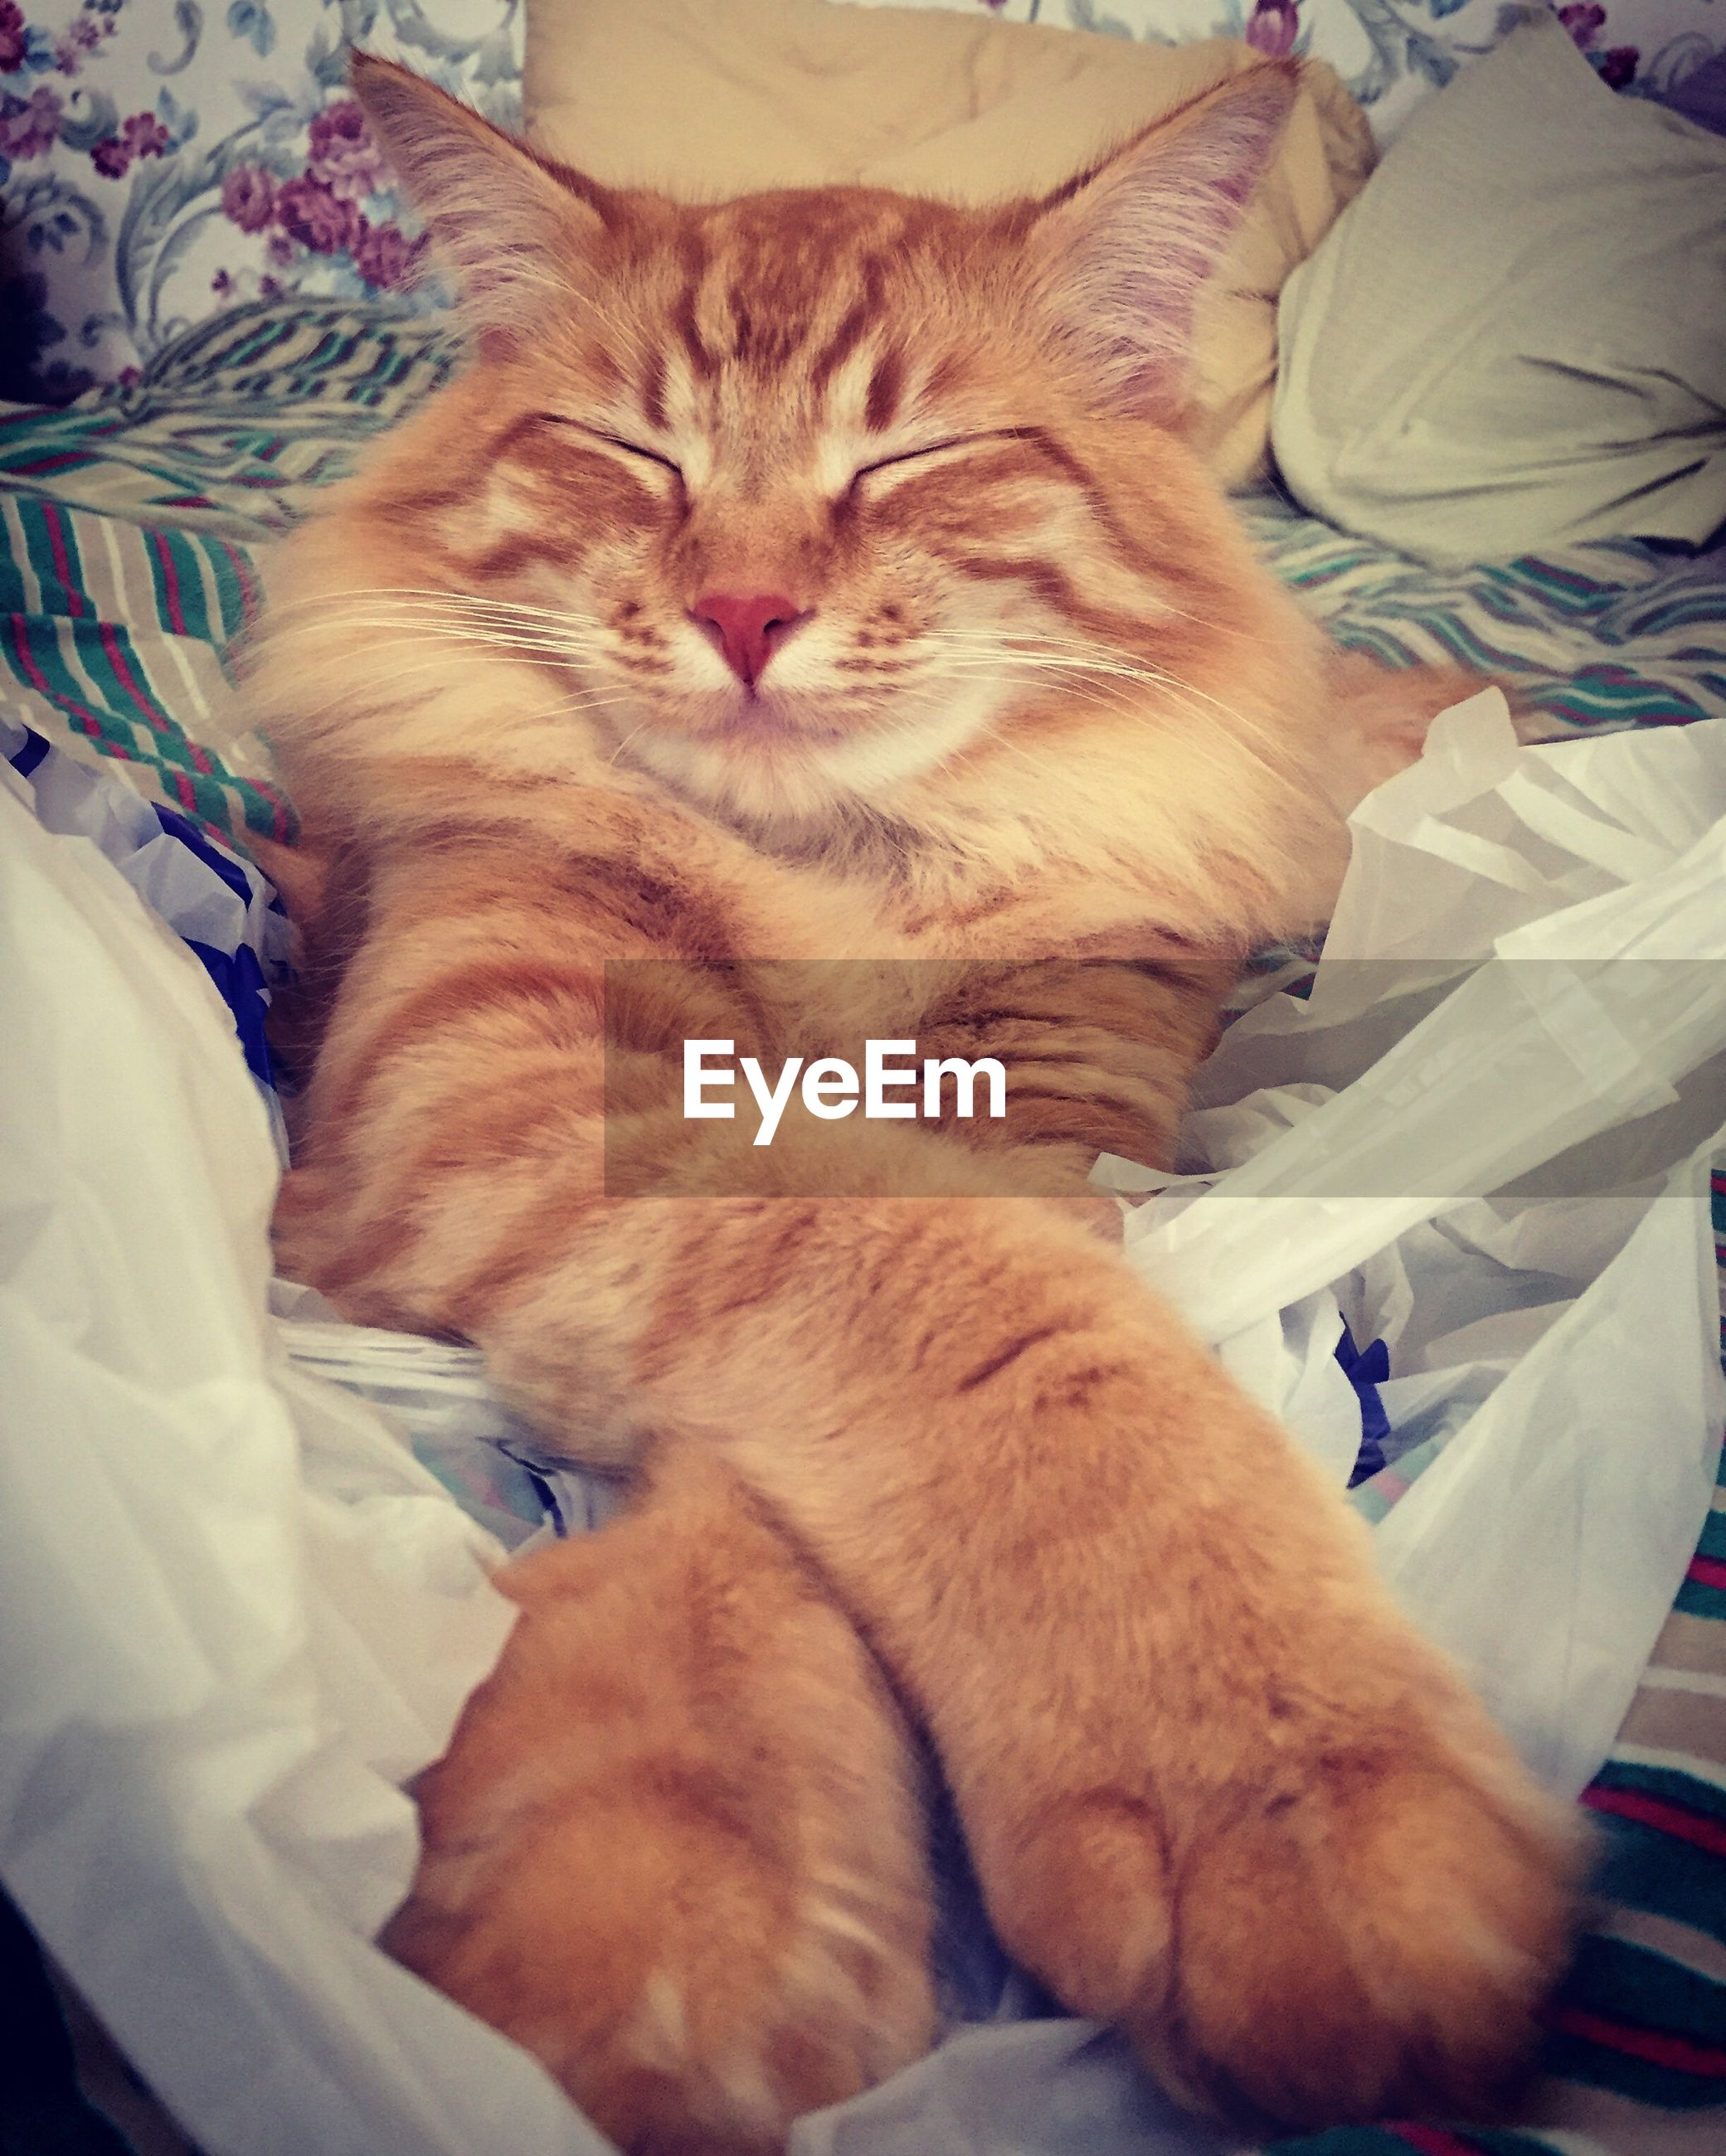 pets, domestic cat, domestic animals, cat, animal themes, bed, mammal, one animal, relaxation, indoors, resting, feline, sleeping, lying down, comfortable, at home, close-up, cozy, sheet, whisker, animal, napping, laziness, zoology, bedding, ginger cat, lying on back